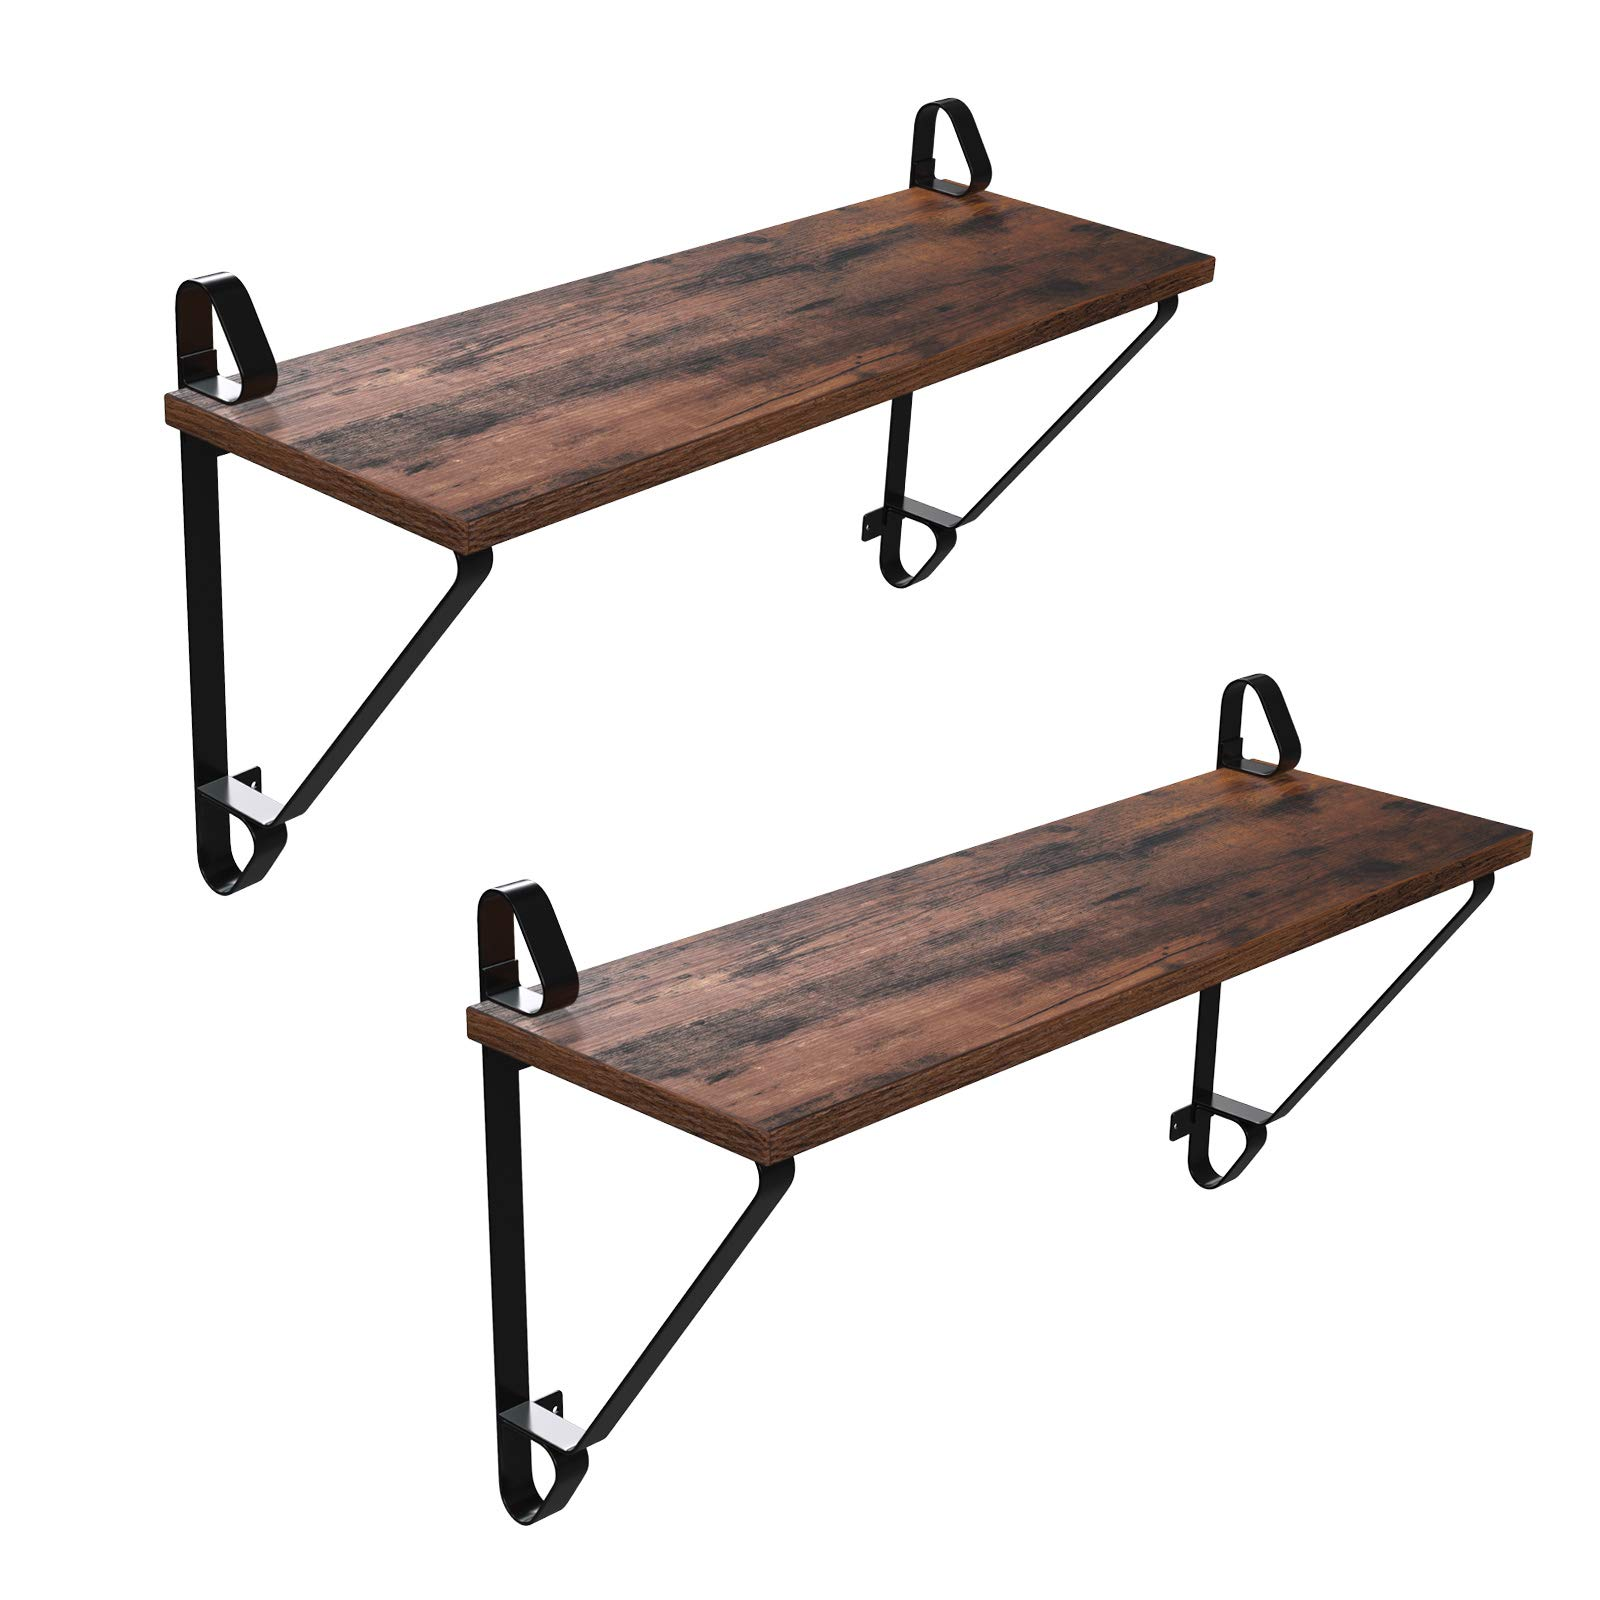 SONGMICS Vintage Floating Shelves, Set of 2 Wall Mounted shelf Wood Look Accent Furniture with Metal frame, for Hallway Entryway Living Room Bedroom Bathroom Kitchen ULCR01BX